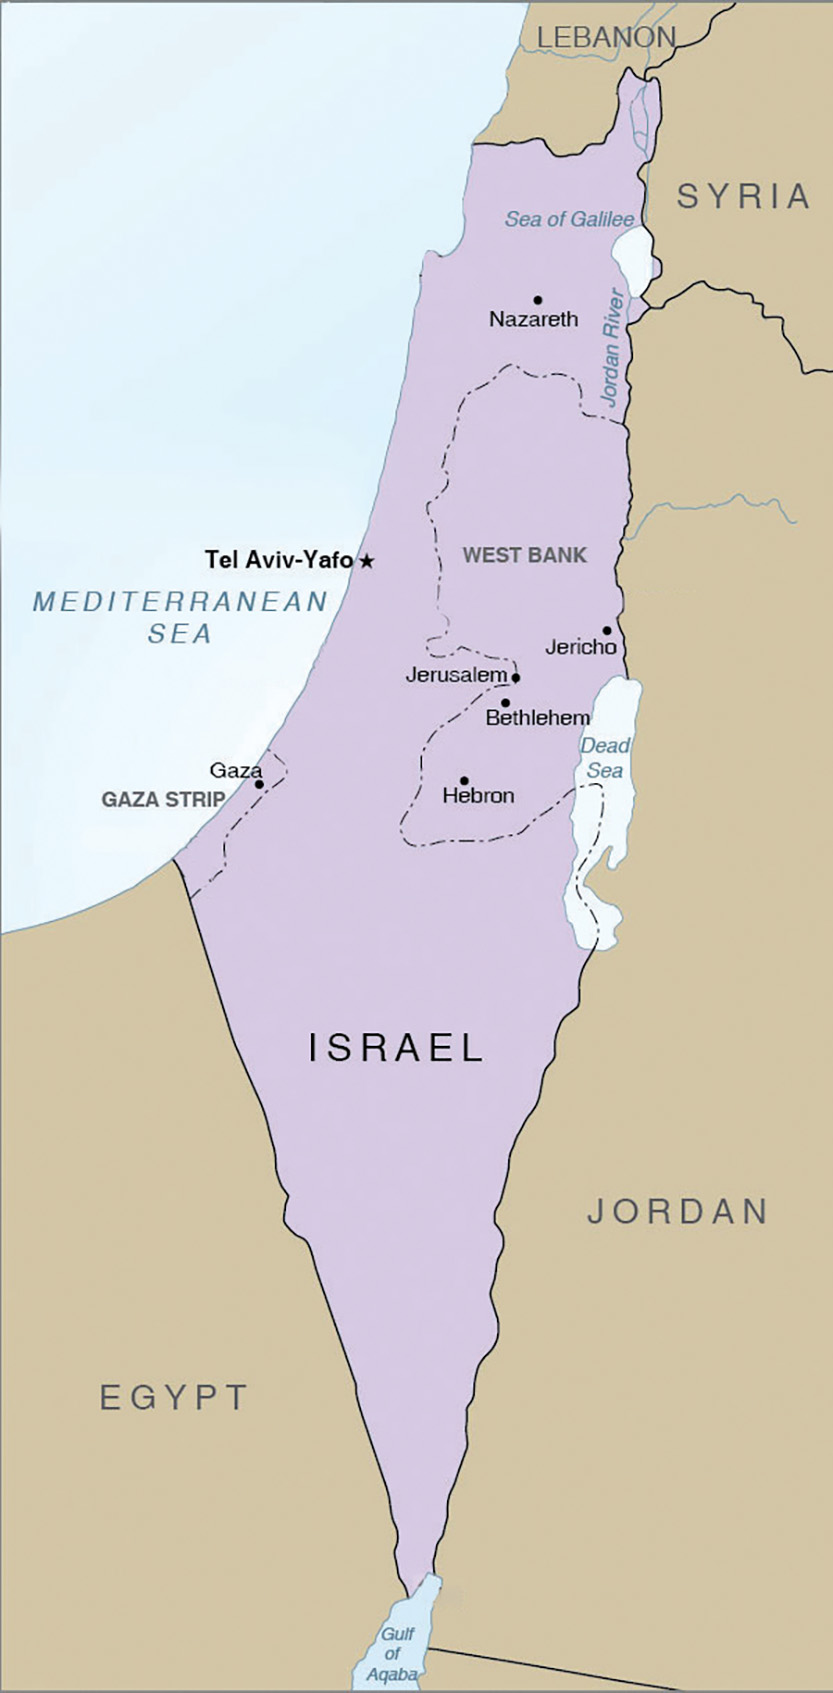 Approximately 1.8 million Palestinians live in a 140 square-mile area that has been under an Israeli siege since 2006. Brutalized under decades of military occupation, the majority of Gazans are refugees from the 1948 war